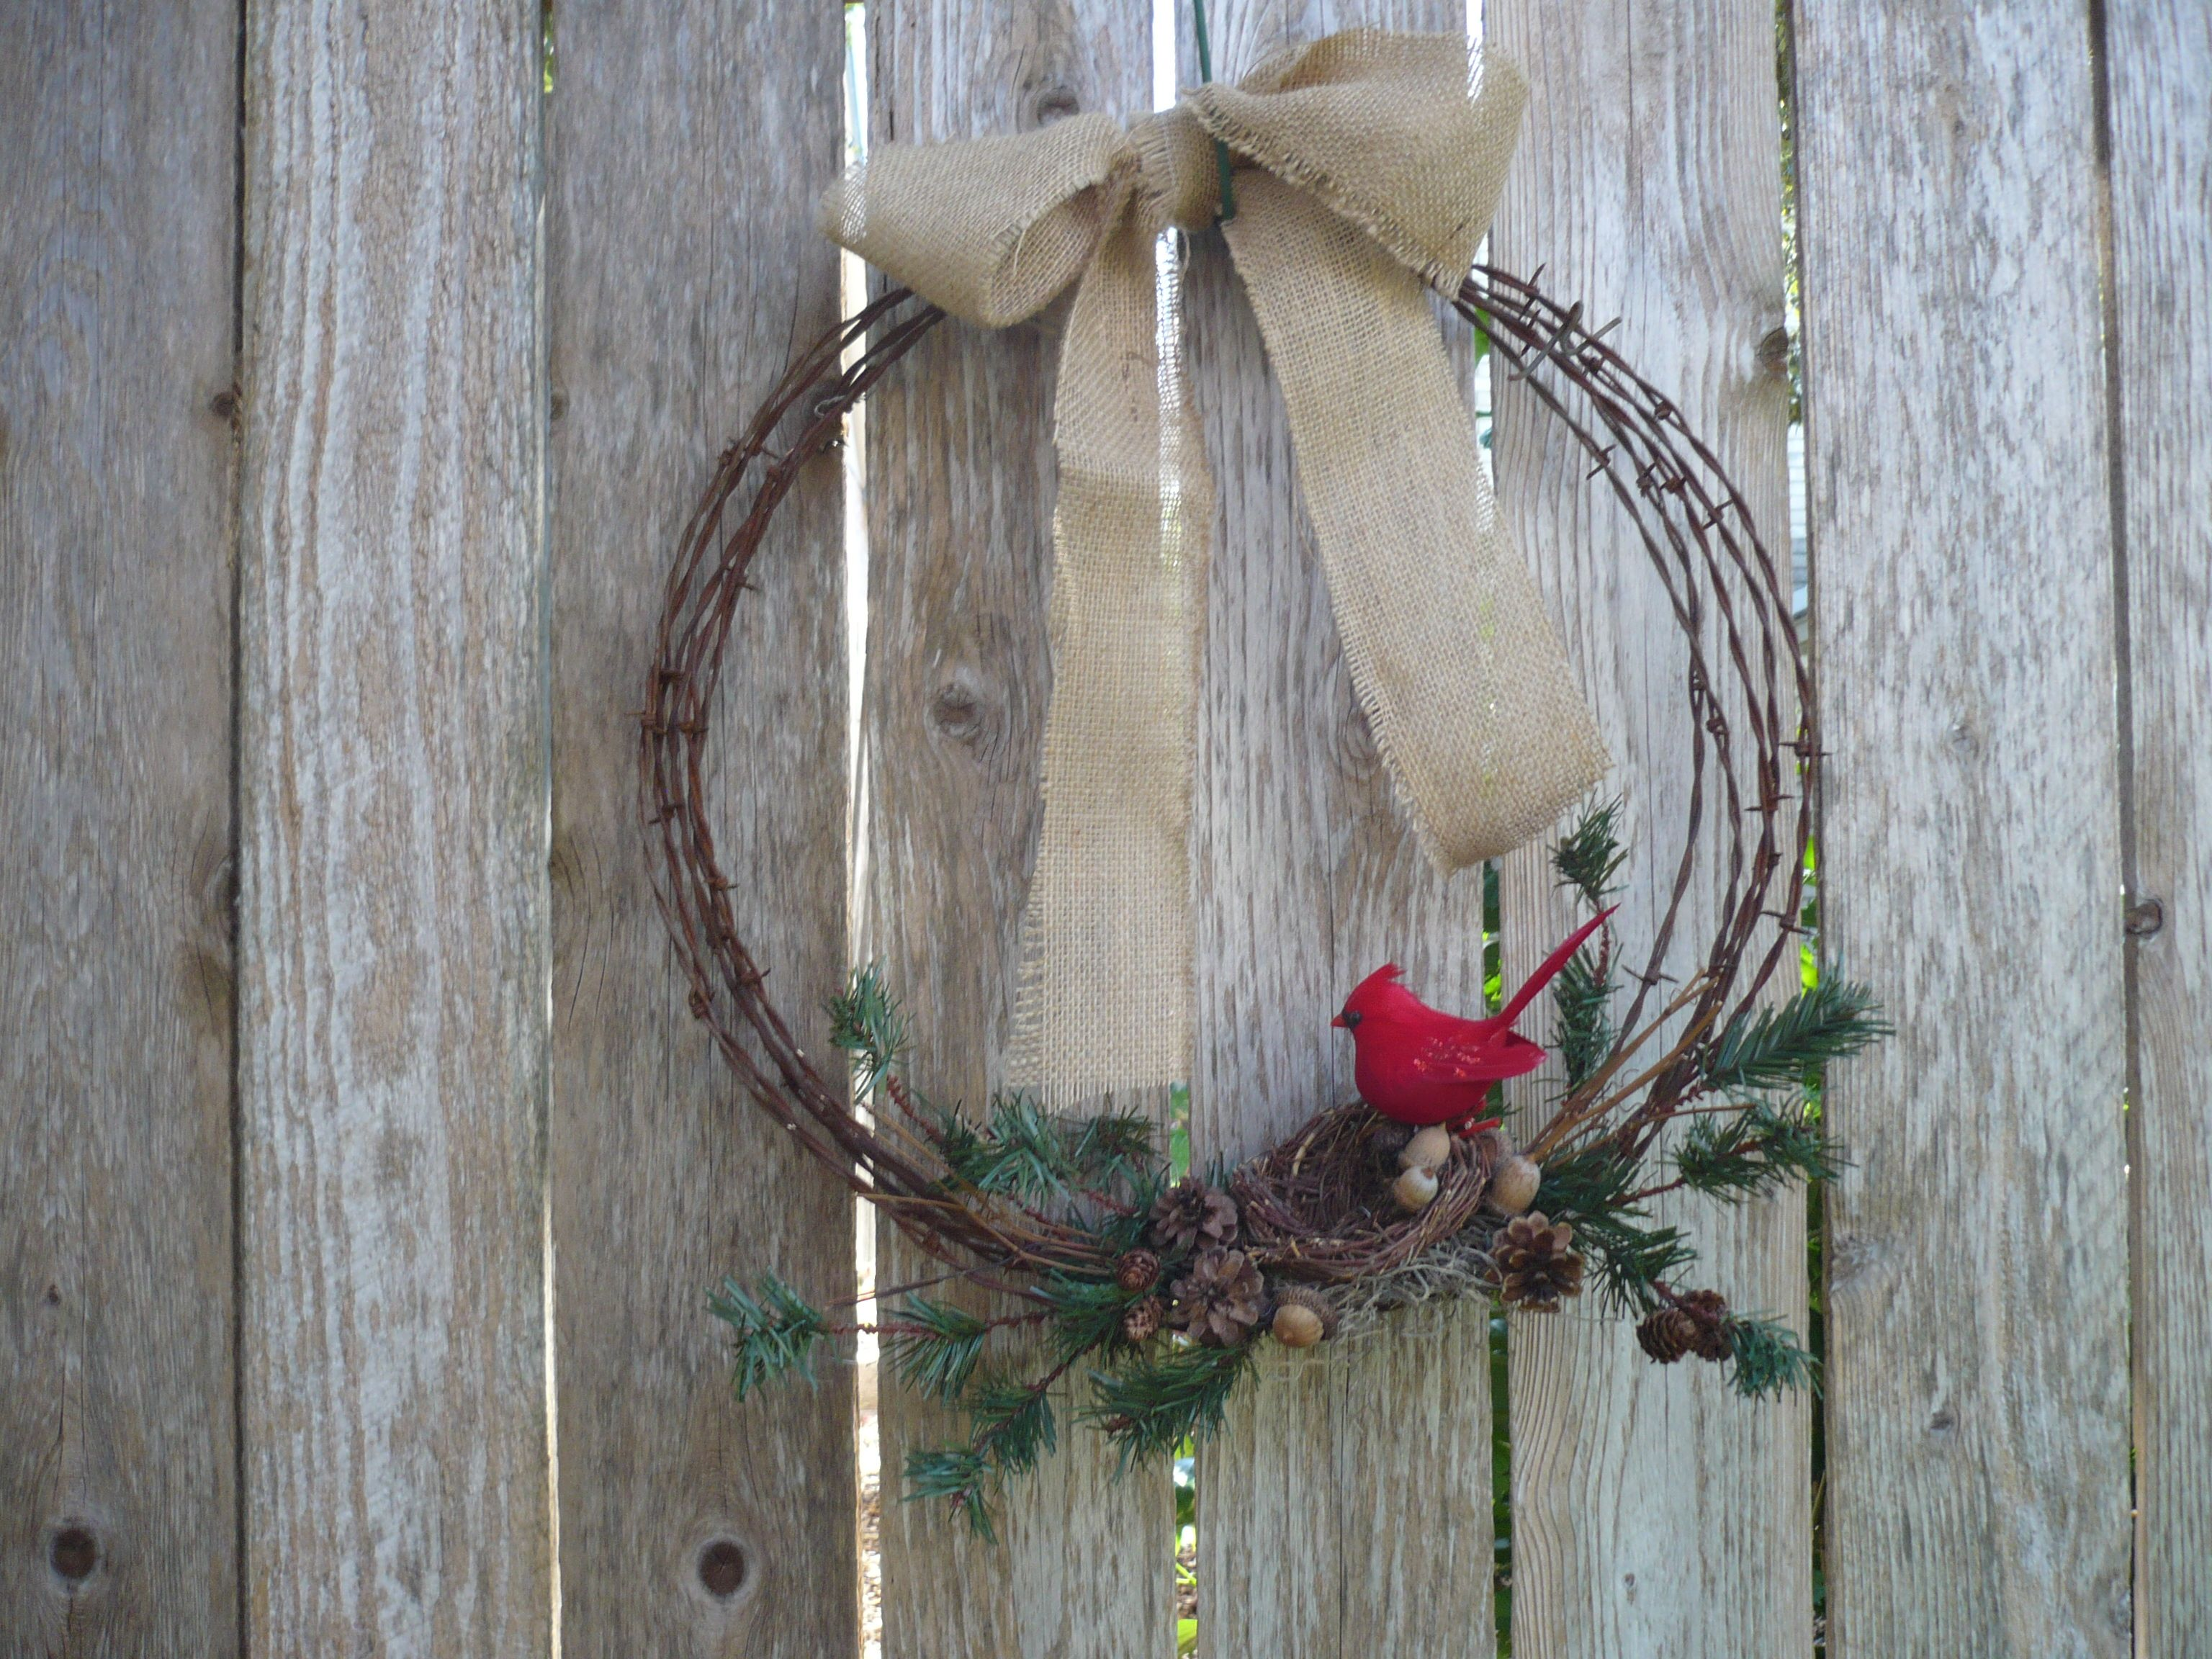 Barb Wire Wreaths Handcrafted - WIRE Center •